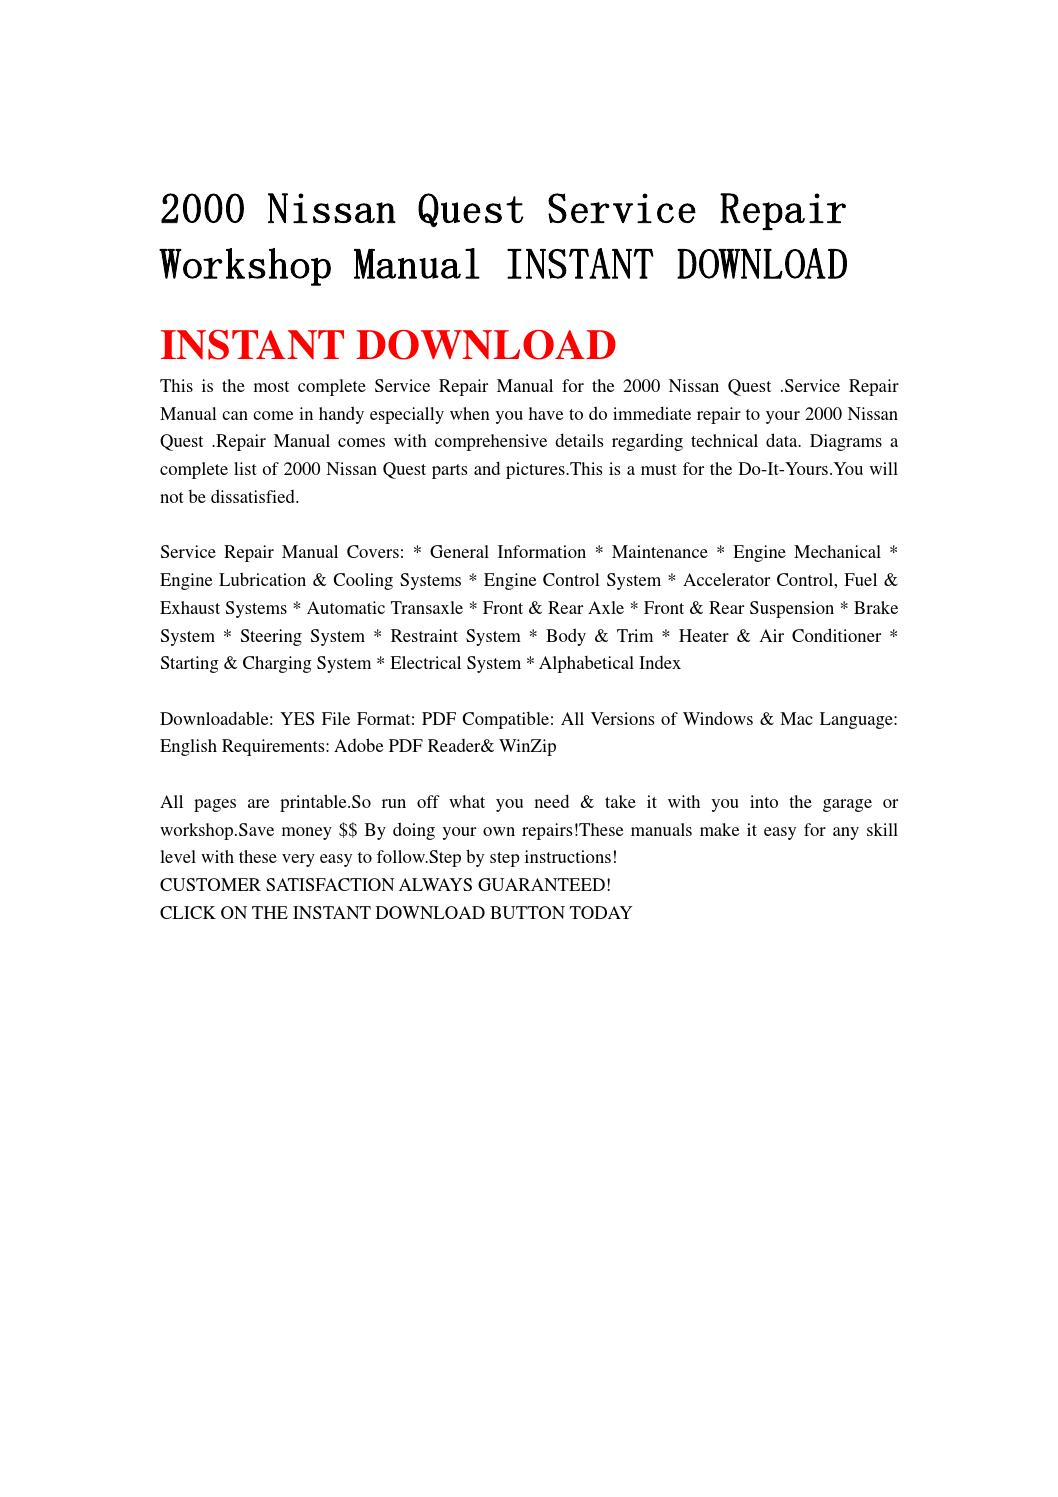 hight resolution of 2000 nissan quest service repair workshop manual instant download by hfgsbefhnsebb issuu